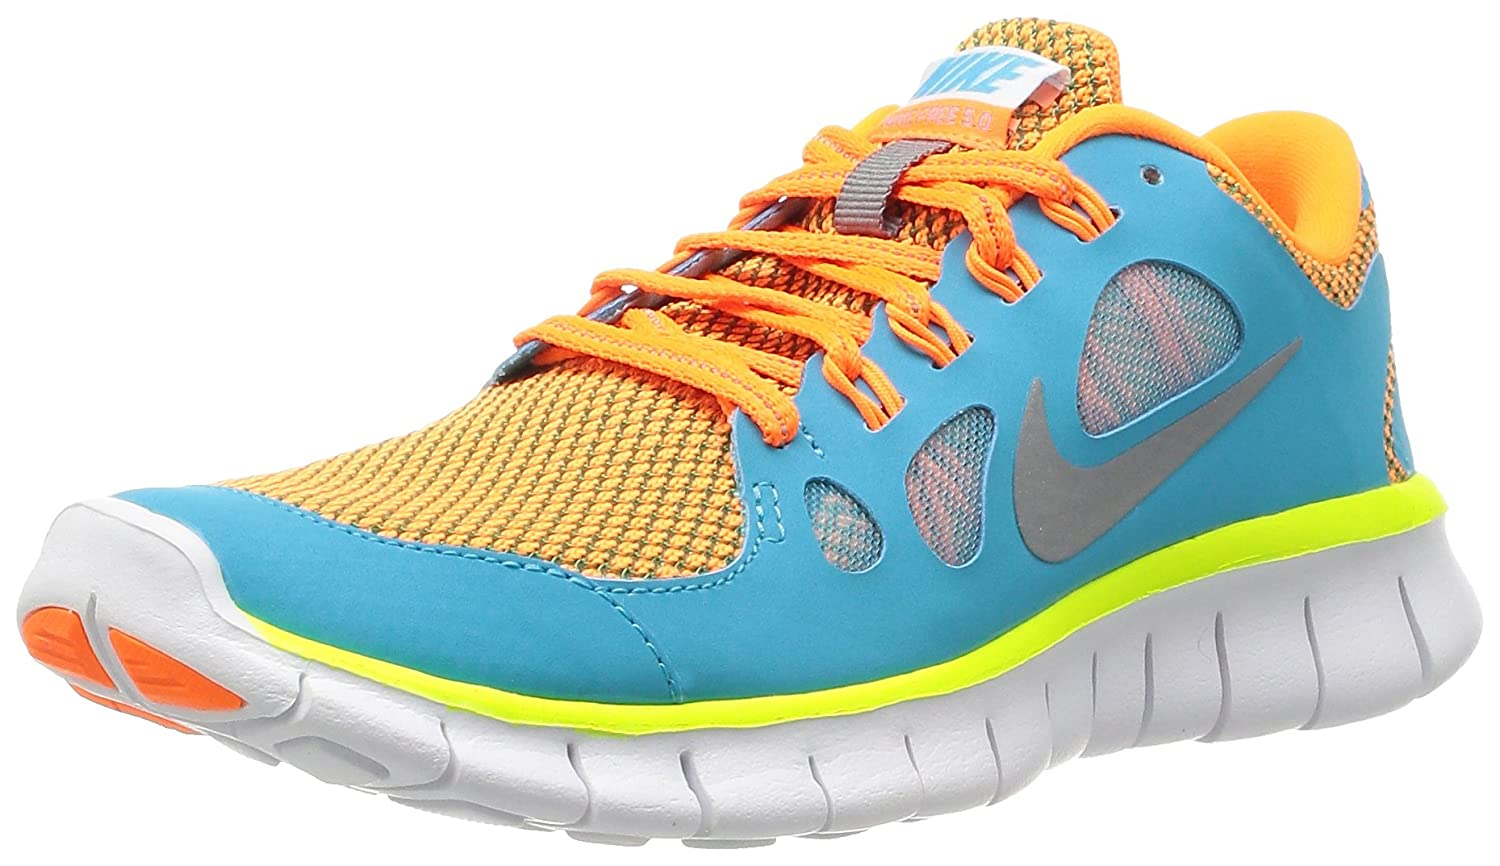 new product 16587 44640 Amazon.com   Nike Free Run 5.0 Le Running Shoes Big Girls 631567-400 Sz 5 Y  Youth   Running